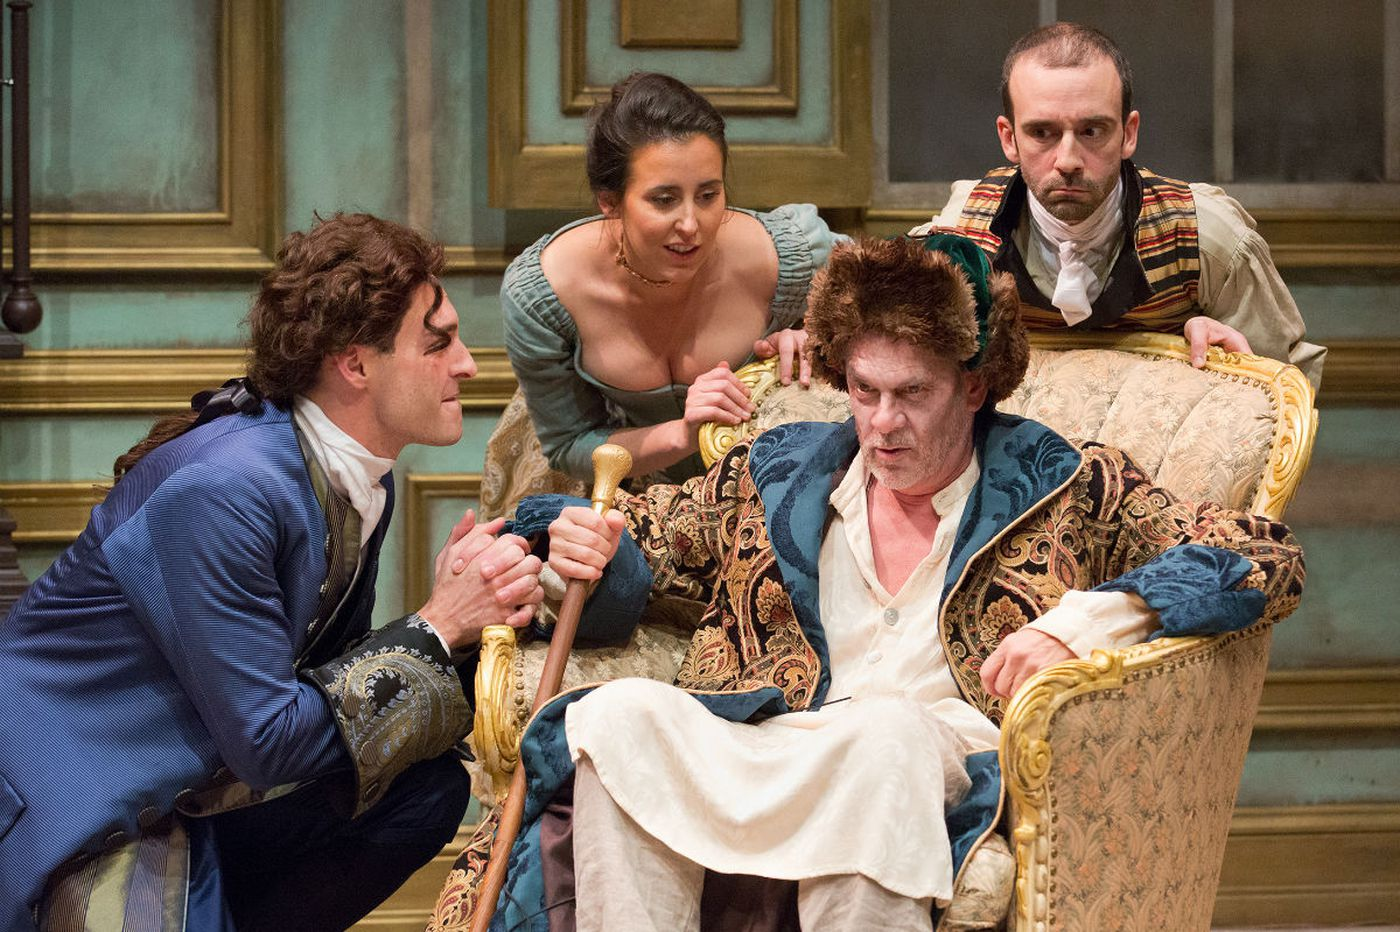 'Heir Apparent' at the Lantern: Long, but full of brilliant language and humor